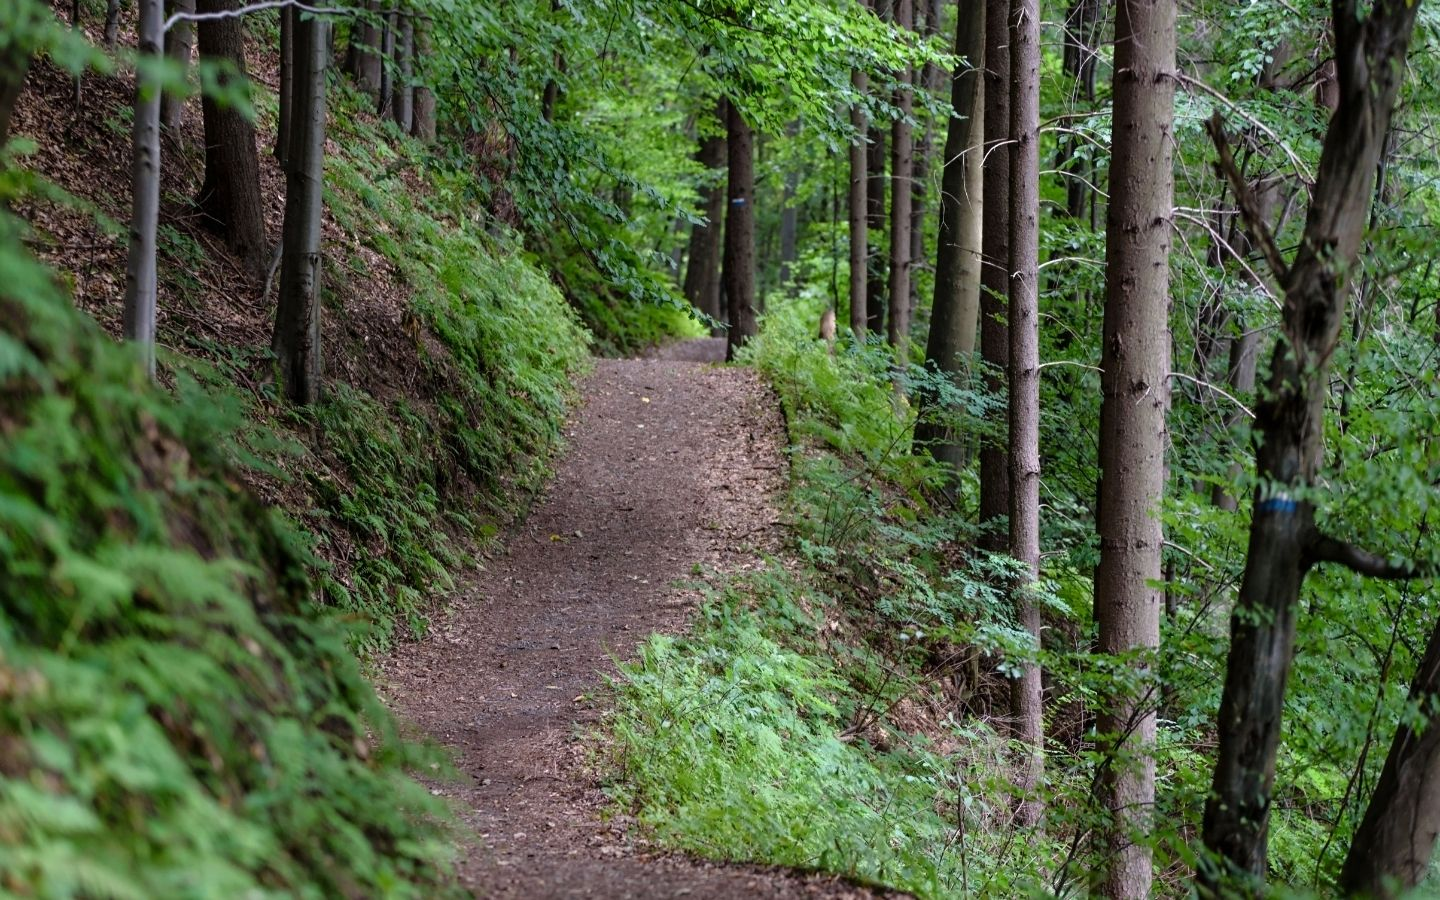 Lush green rolling and winding hiking trail